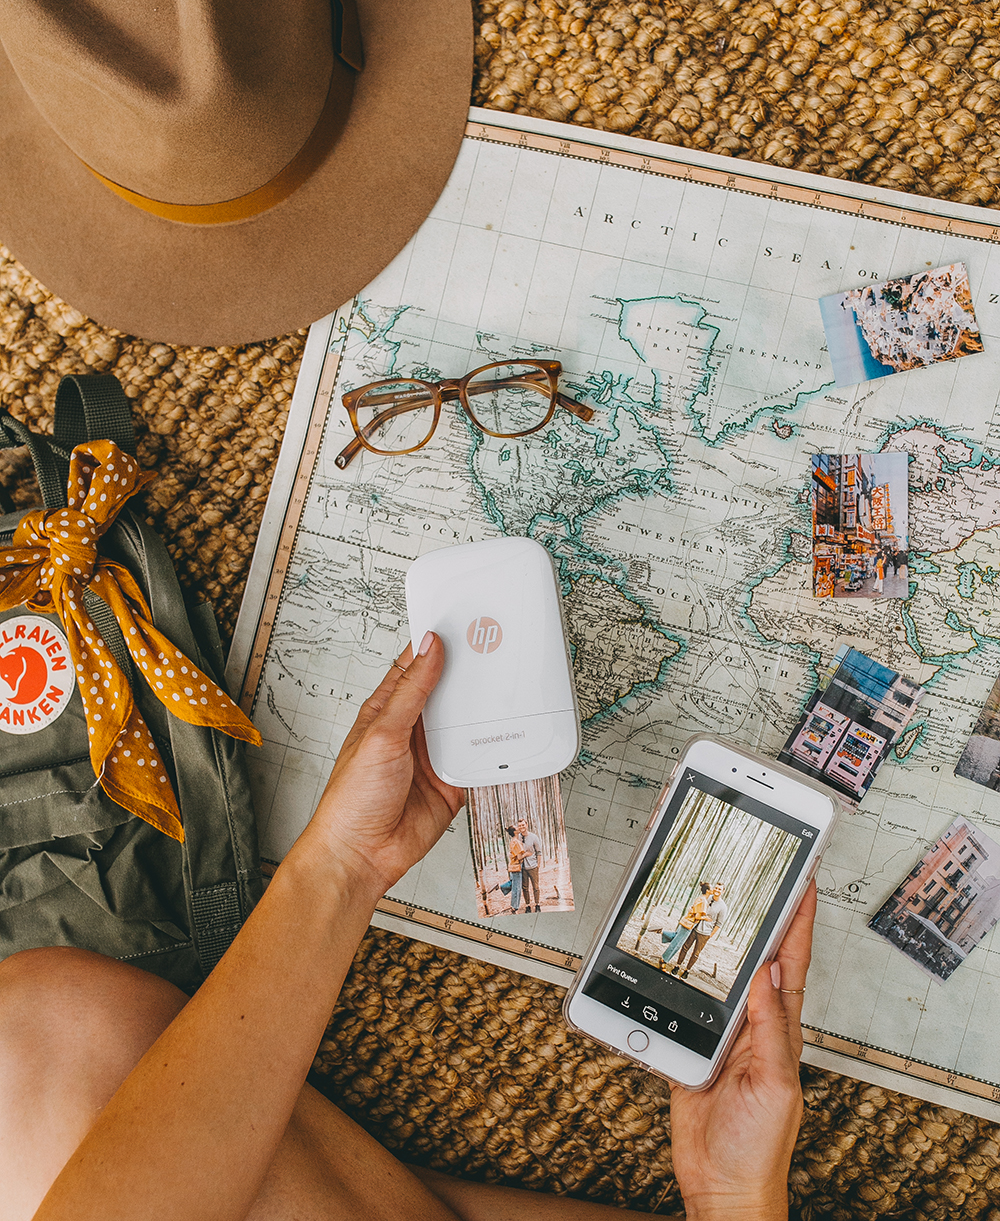 livvyland-blog-olivia-watson-hp-sprocket-portable-photo-printer-adventure-vacation-3